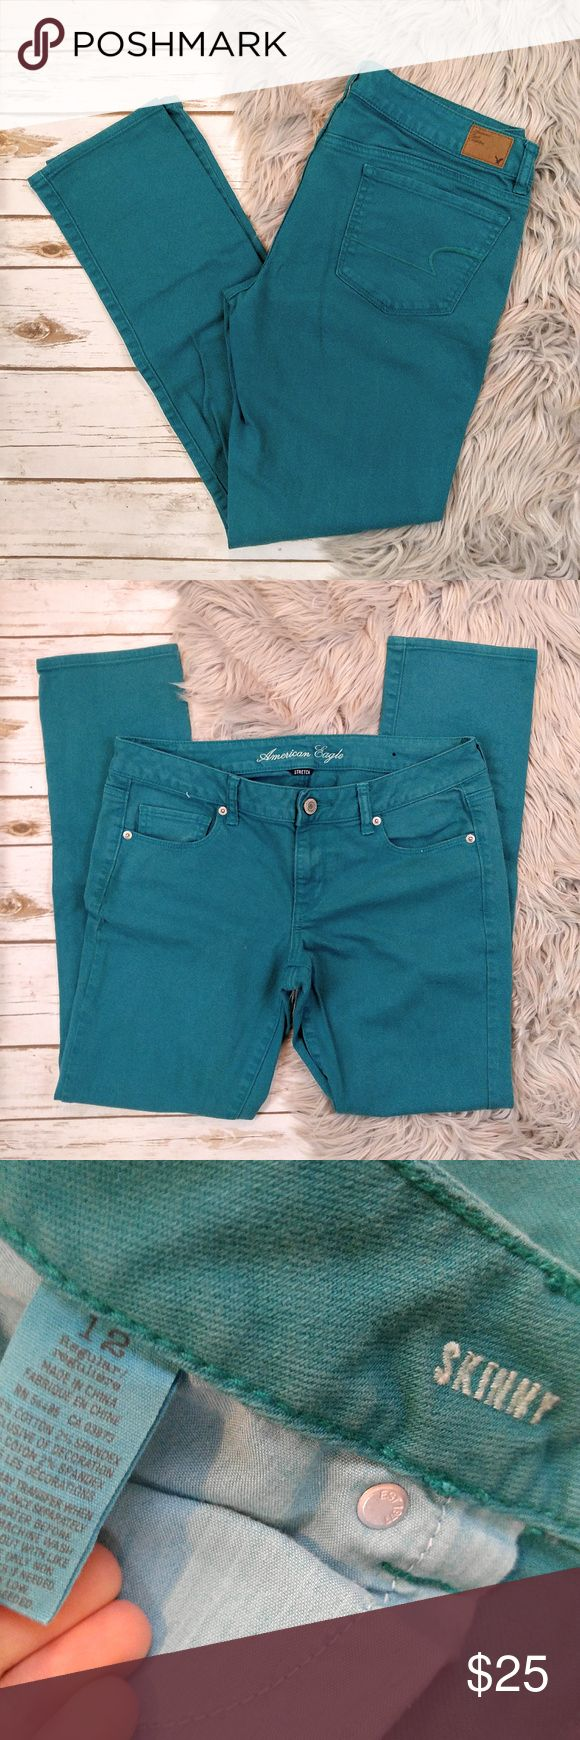 """American Eagle Outfitters Teal Skinny Jeans American Eagle Outfitters Teal Skinny Jeans Size 12 in excellent used condition. Measurements laid flat  Waist: 17.5"""" Hips: 20"""" Rise: 8"""" Inseam: 30.5"""" Style: Skinny Materials: 98% Cotton 2% Spandex (These have some stretch) I ship orders placed before 11 AM Central time on the same day. Please feel free to ask questions. Happy Poshing! American Eagle Outfitters Jeans Skinny"""